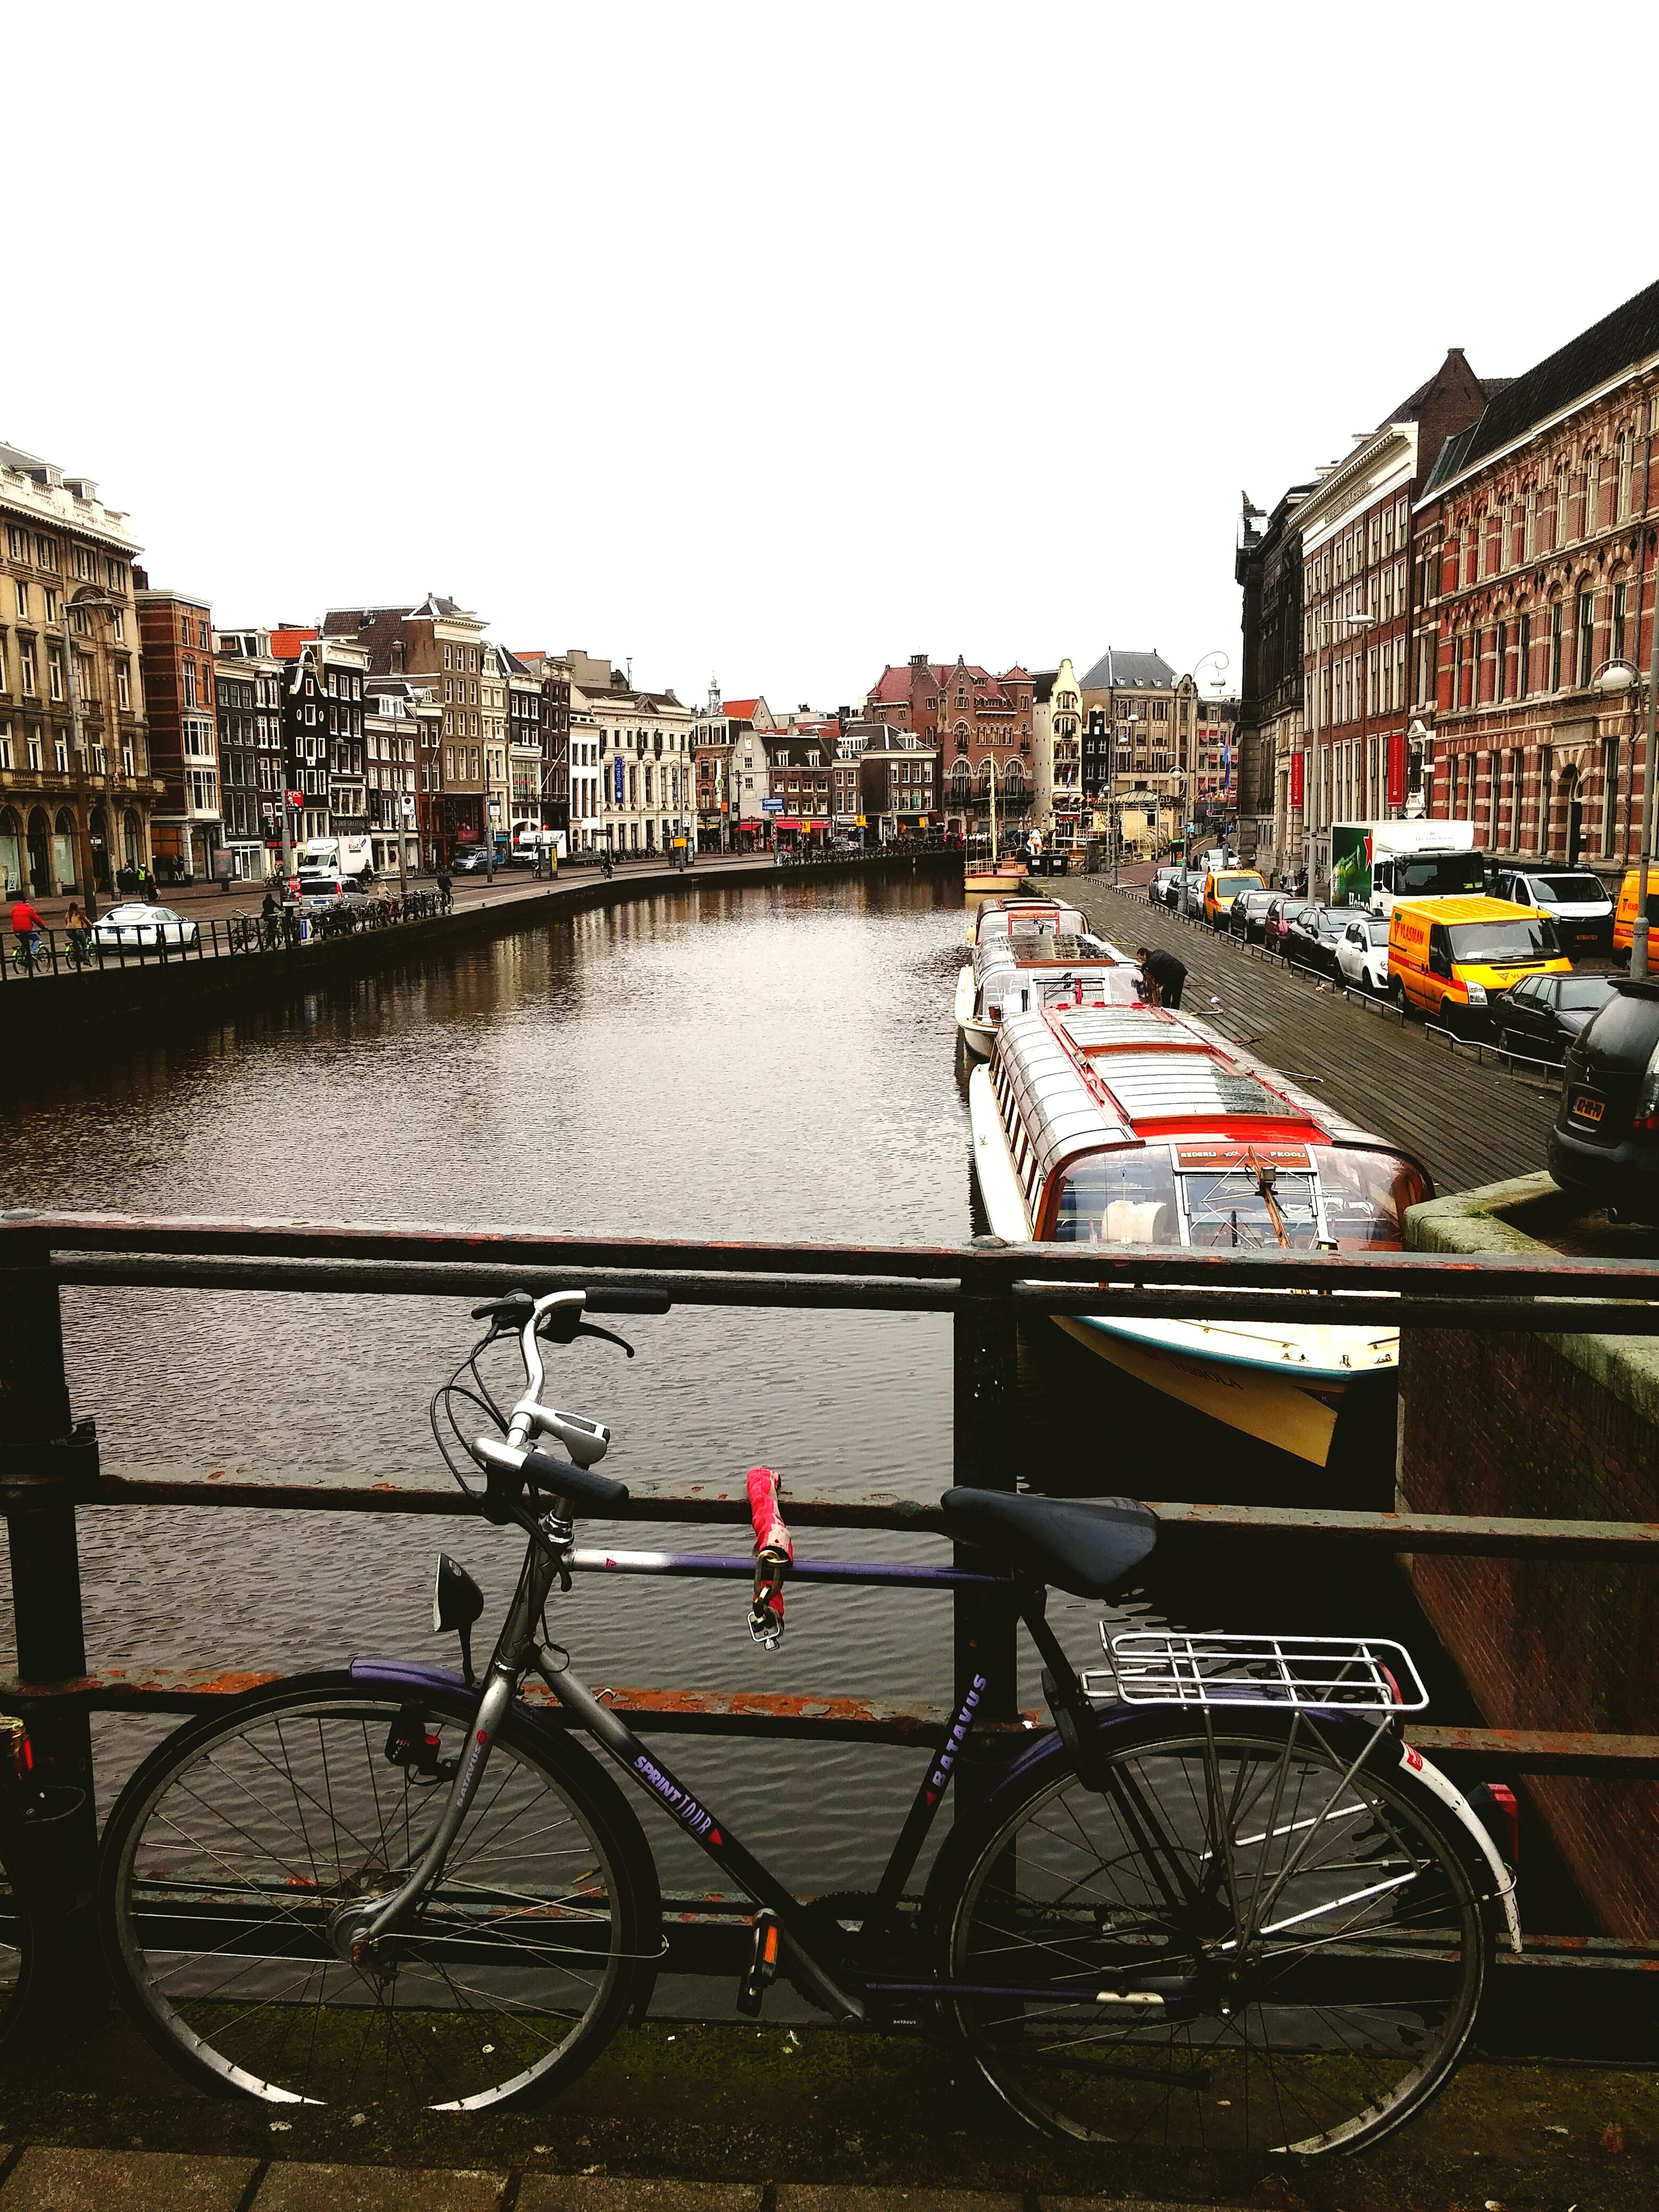 building exterior, transportation, architecture, mode of transport, built structure, bicycle, land vehicle, water, city, canal, parked, nautical vessel, stationary, parking, clear sky, river, railing, street, boat, travel